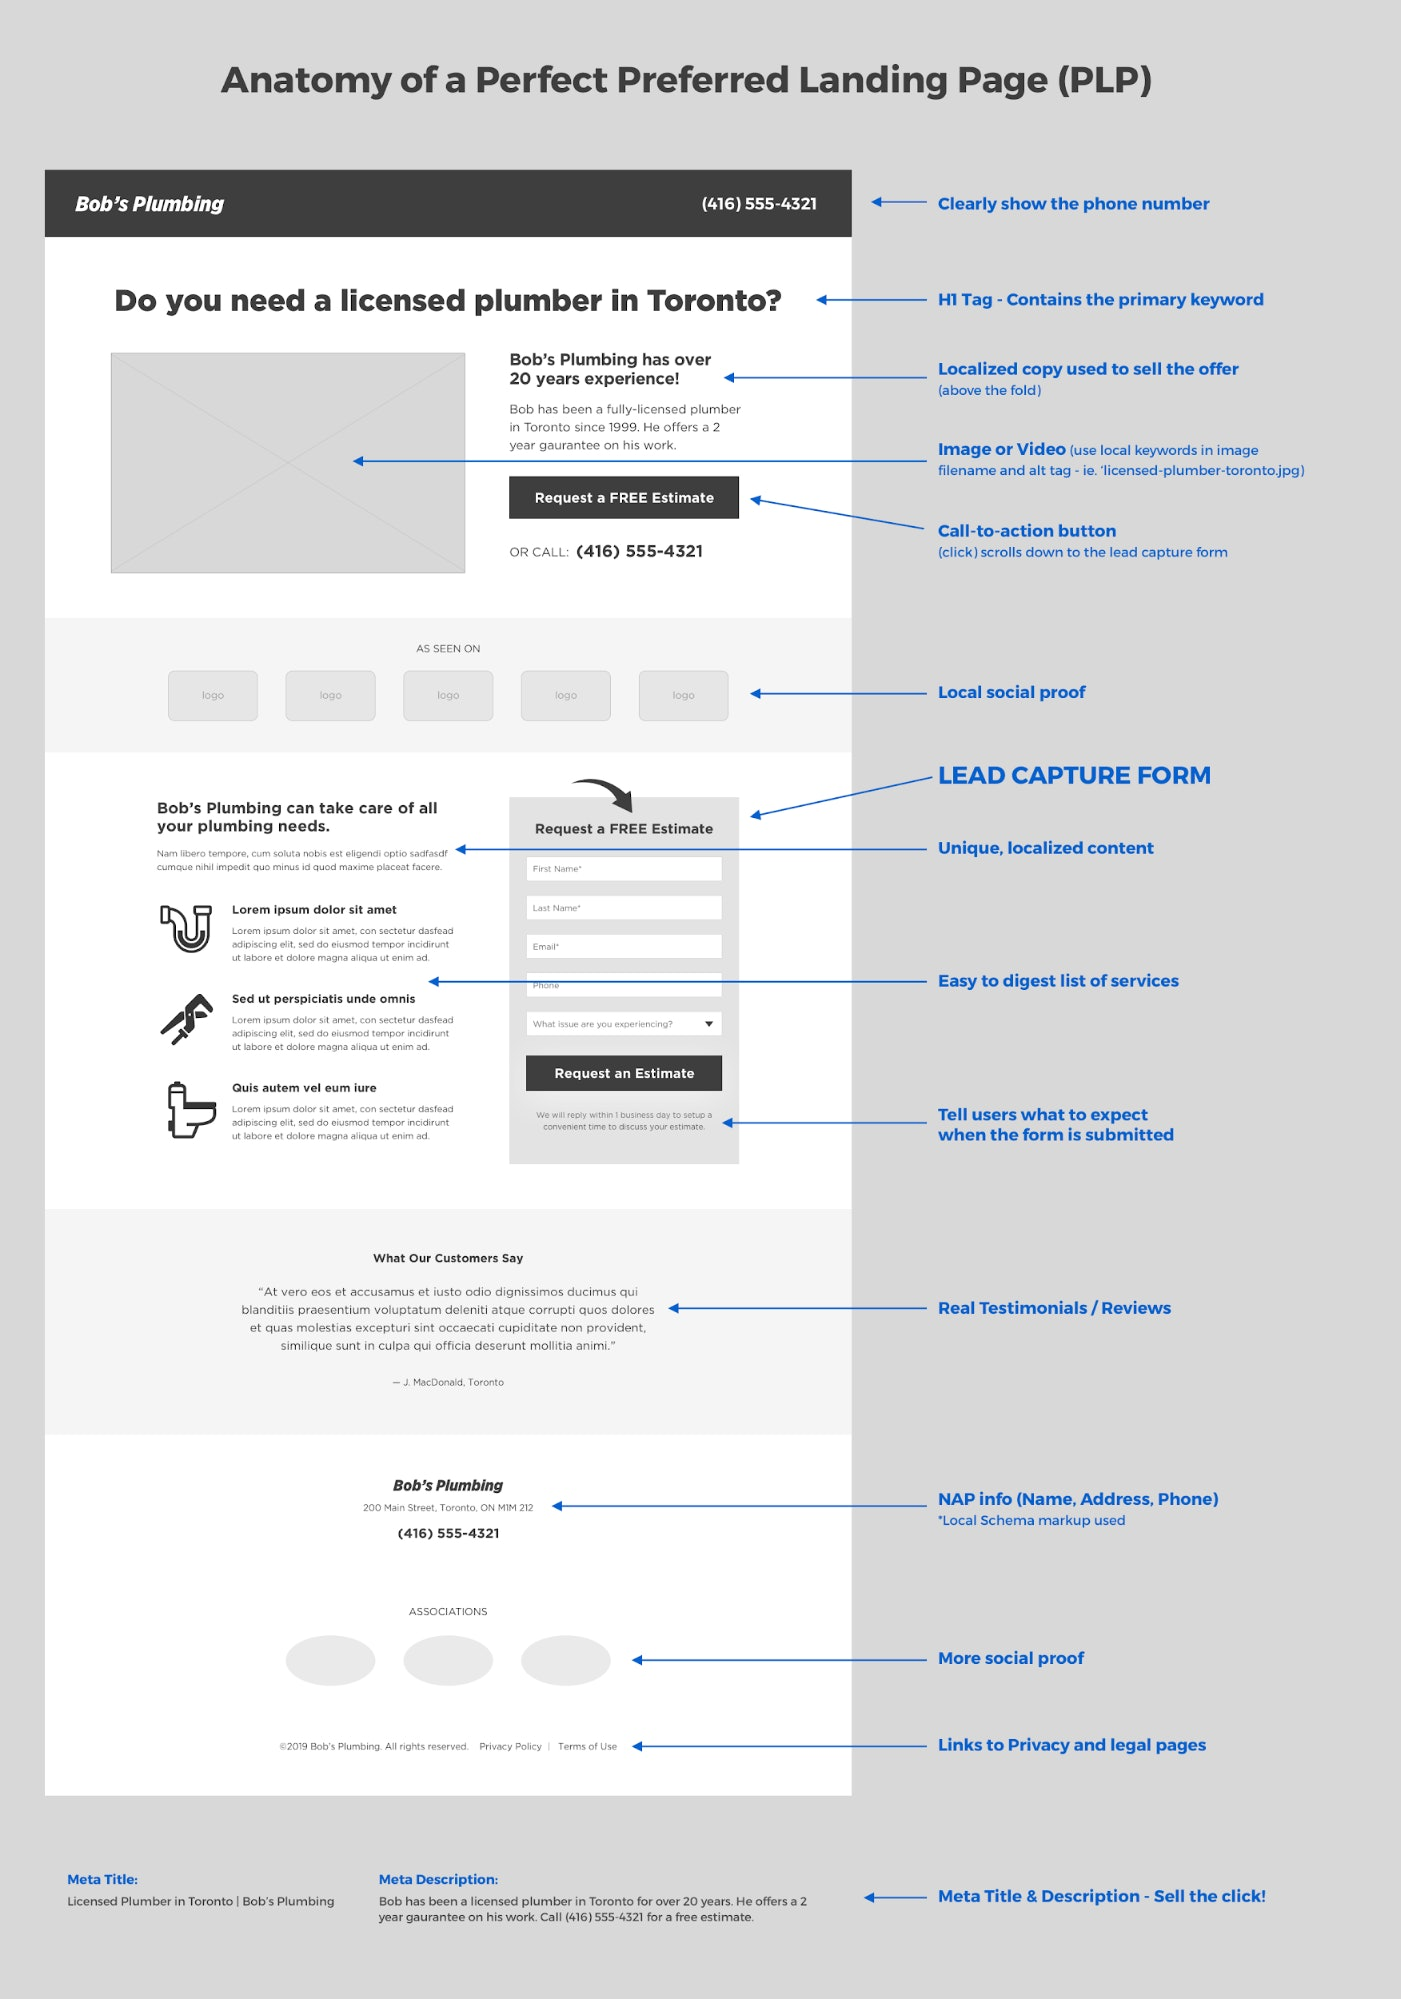 optimized landing page targeting location intent.